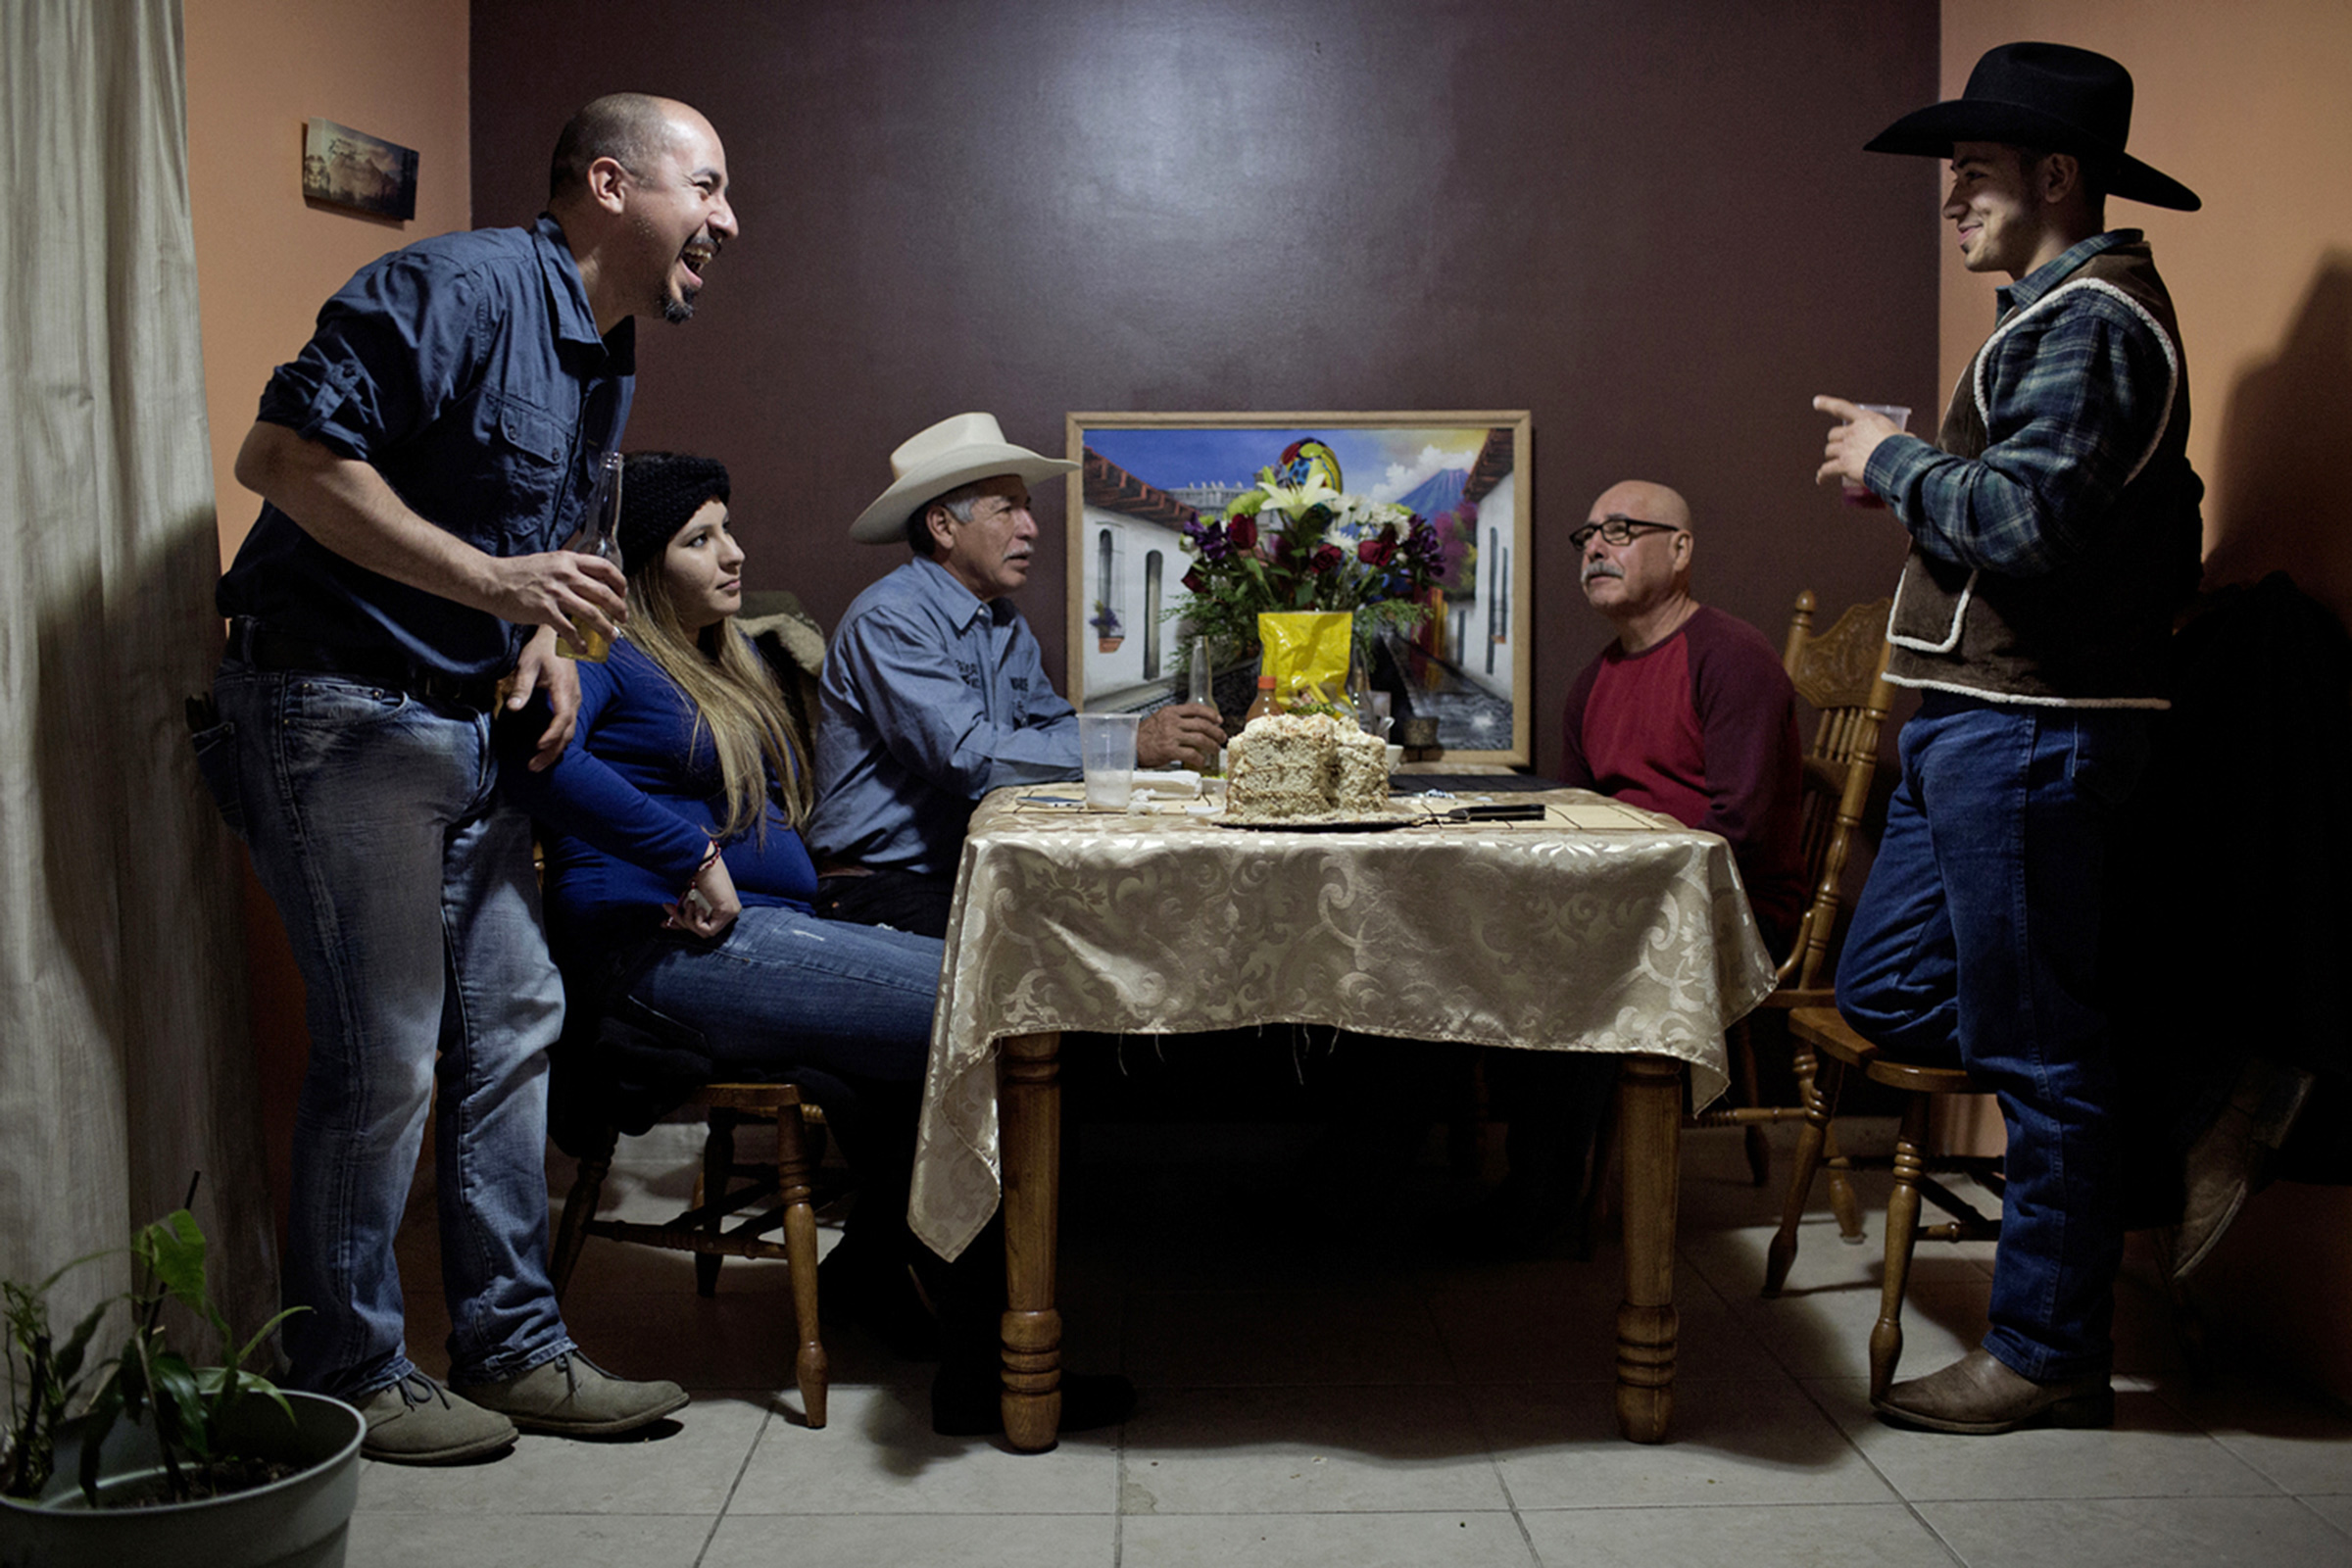 Juan Barillas (left) laughs at a joke with his nephew, Marcos Espinoza, 17 (right), at a family surprise party in Bowling Green, Kentucky. Juan's girlfriend, Blanca Lopez, a 23-year-old Mexican girl, is next to him – she's carrying the couple's first child. In the back, Manuel Barillas enjoys conversation with his brother, Edwin Barillas. (Photo by Betina Garcia/GroundTruth)